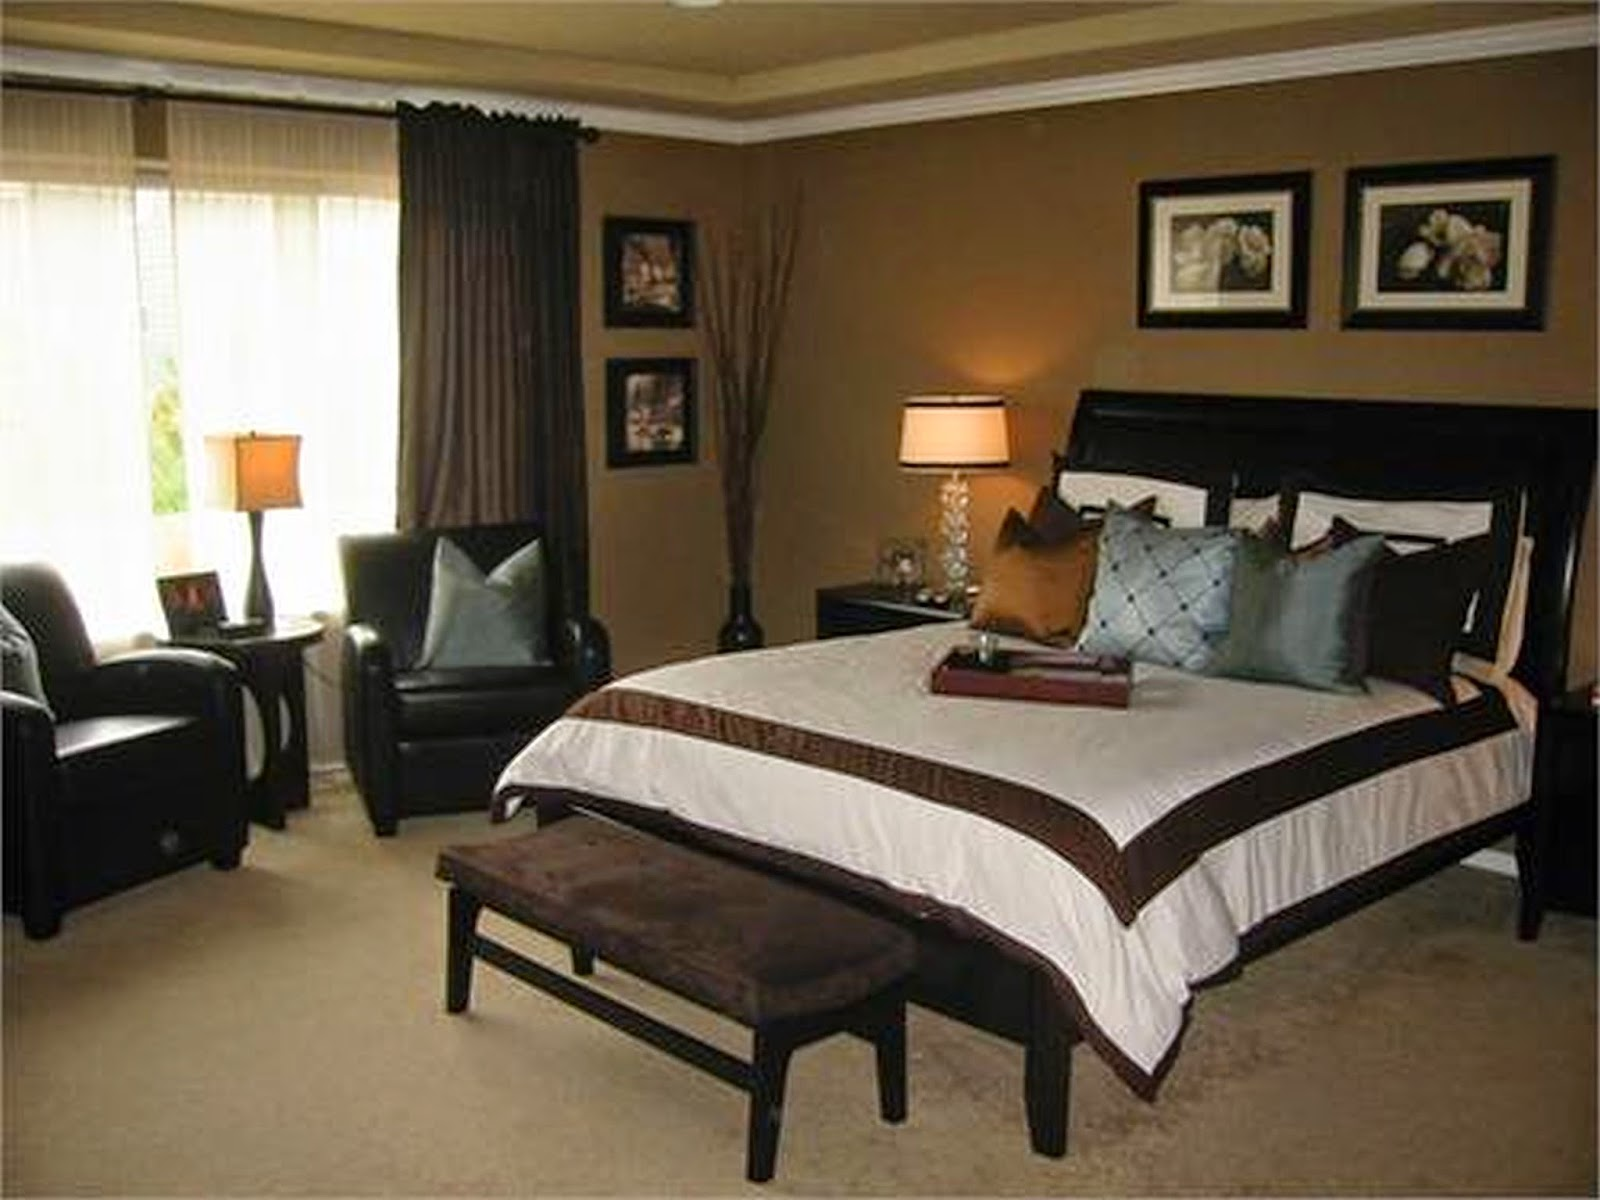 How to use brown curtains in the interior design for Dark brown bedroom designs